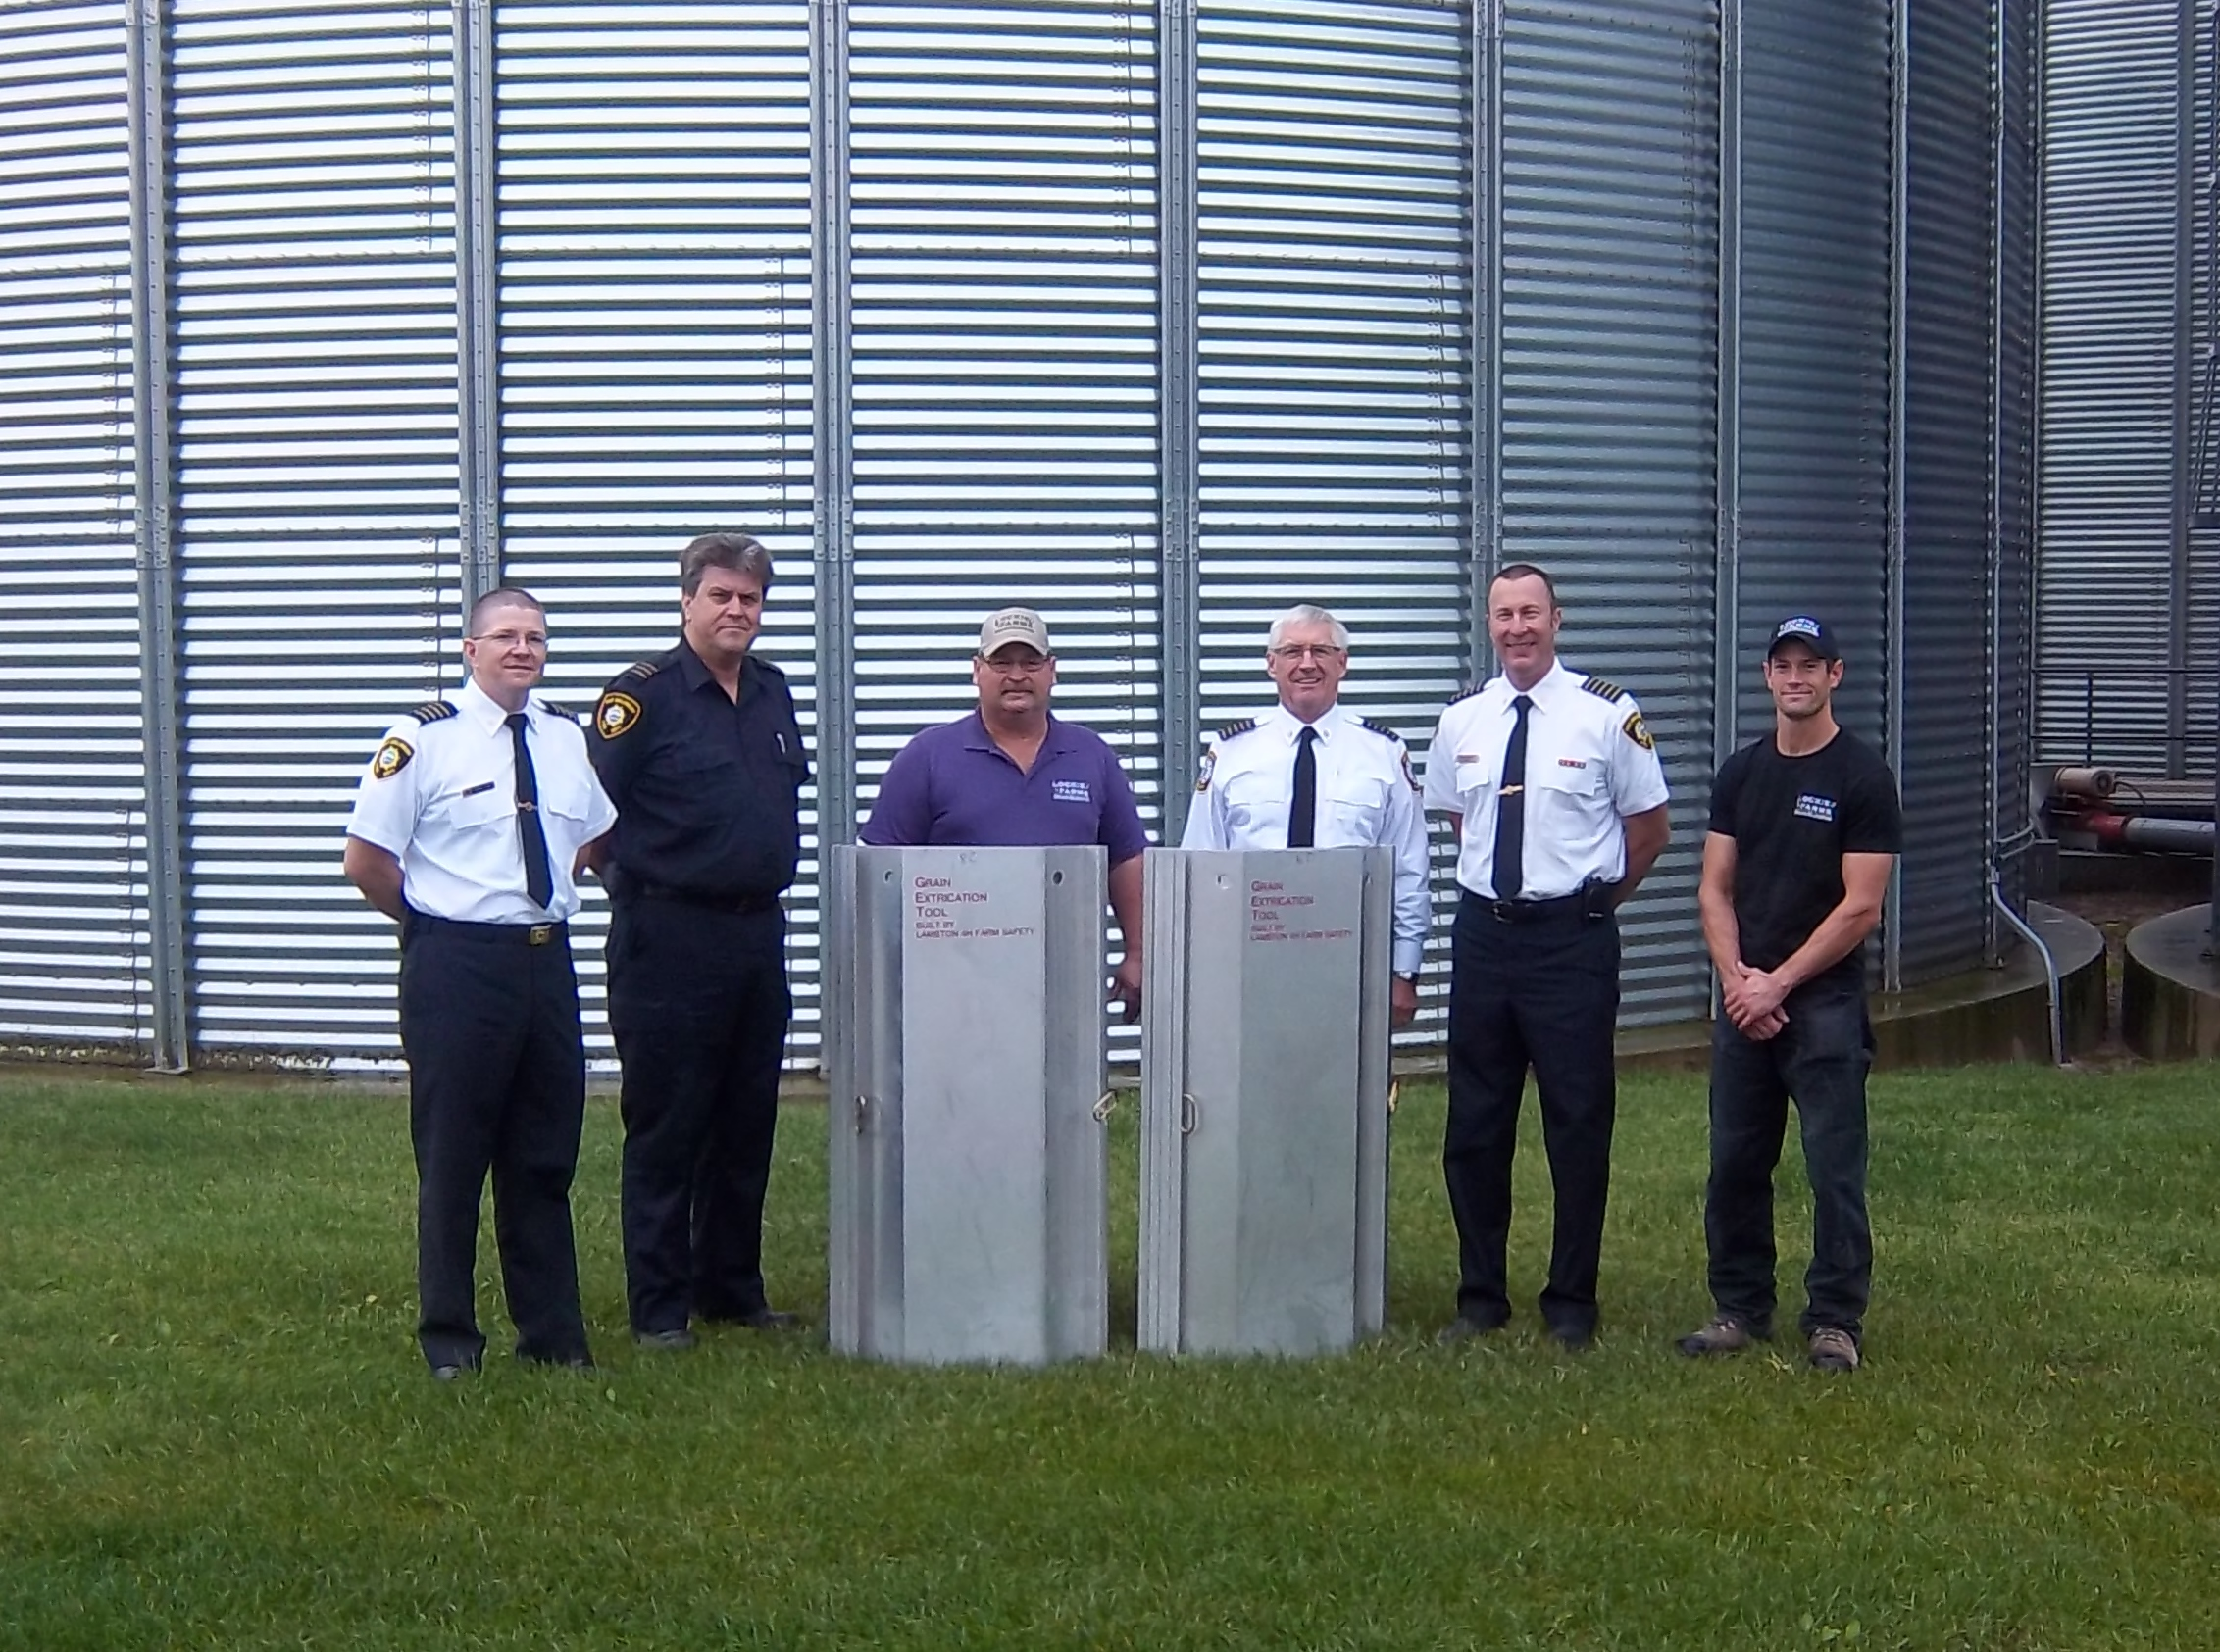 Lockie Farms was able to donate Grain Safety Extraction tools to fire departments in the area. Departments included East Gwillimbury, Uxbridge Twsp, Georgina Twsp, City of Kawartha Lakes, & Sunderland.